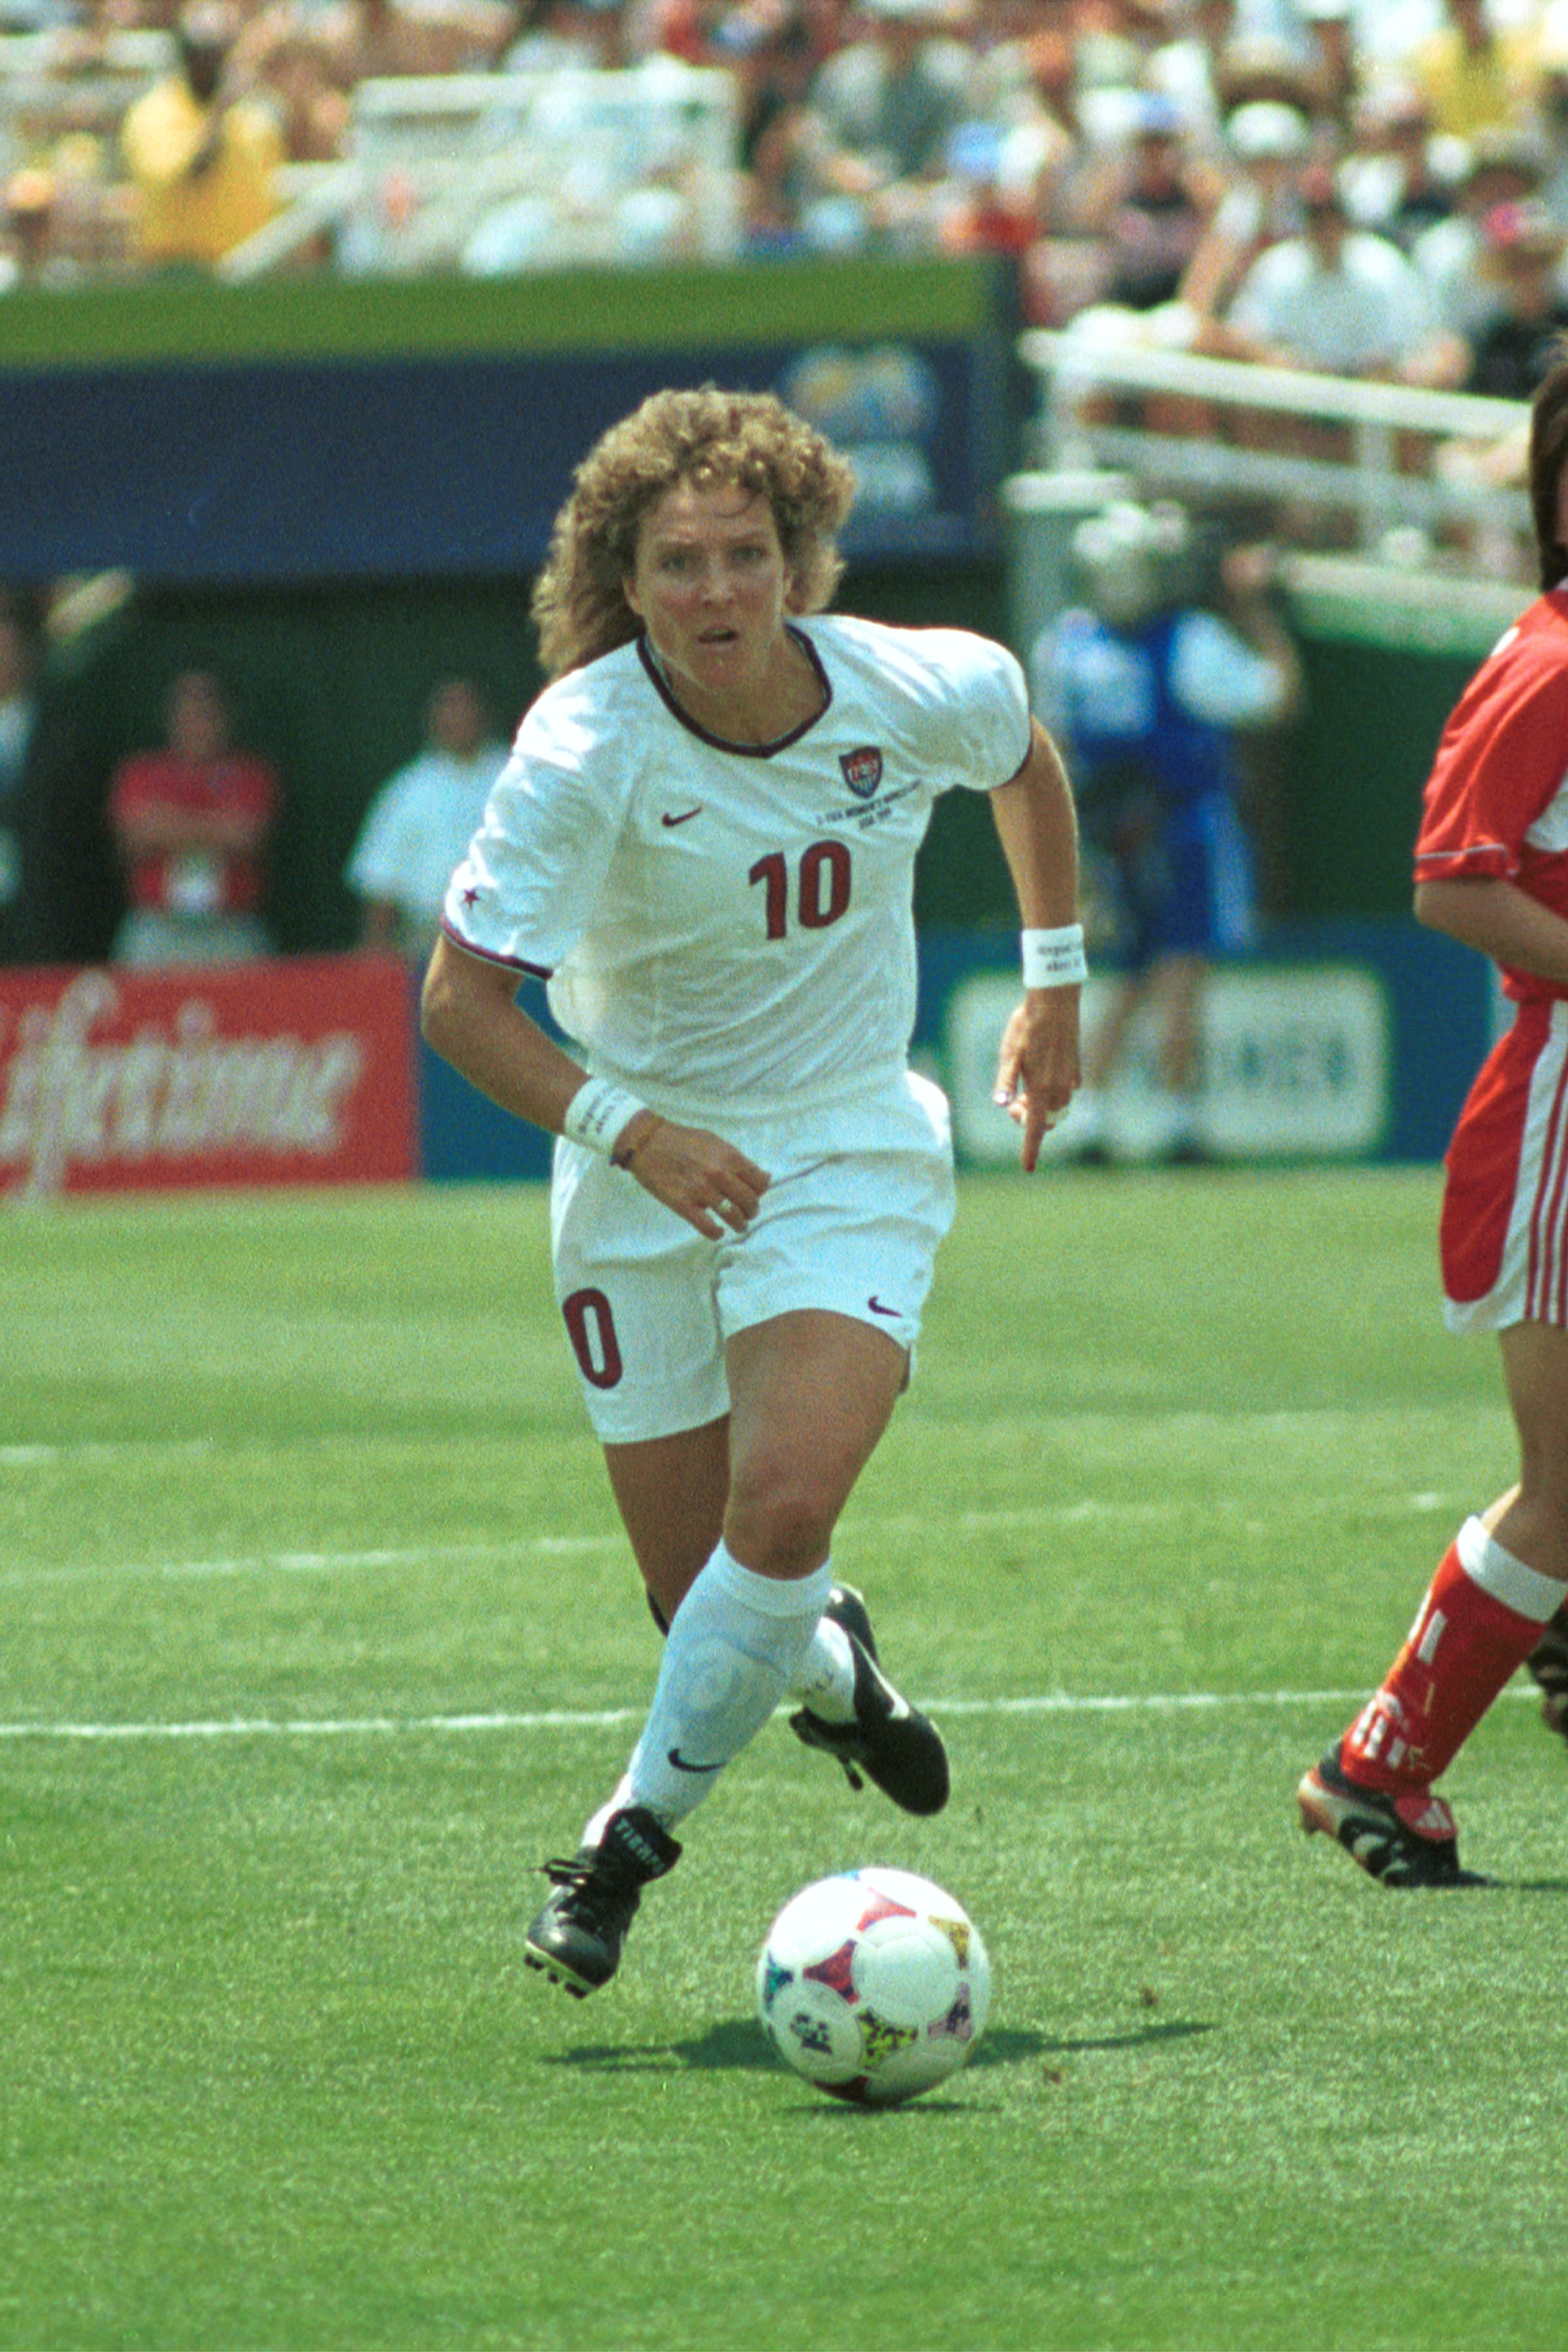 Michelle Akers - One of the greatest soccer players of all time, and one of two women on the FIFA 100